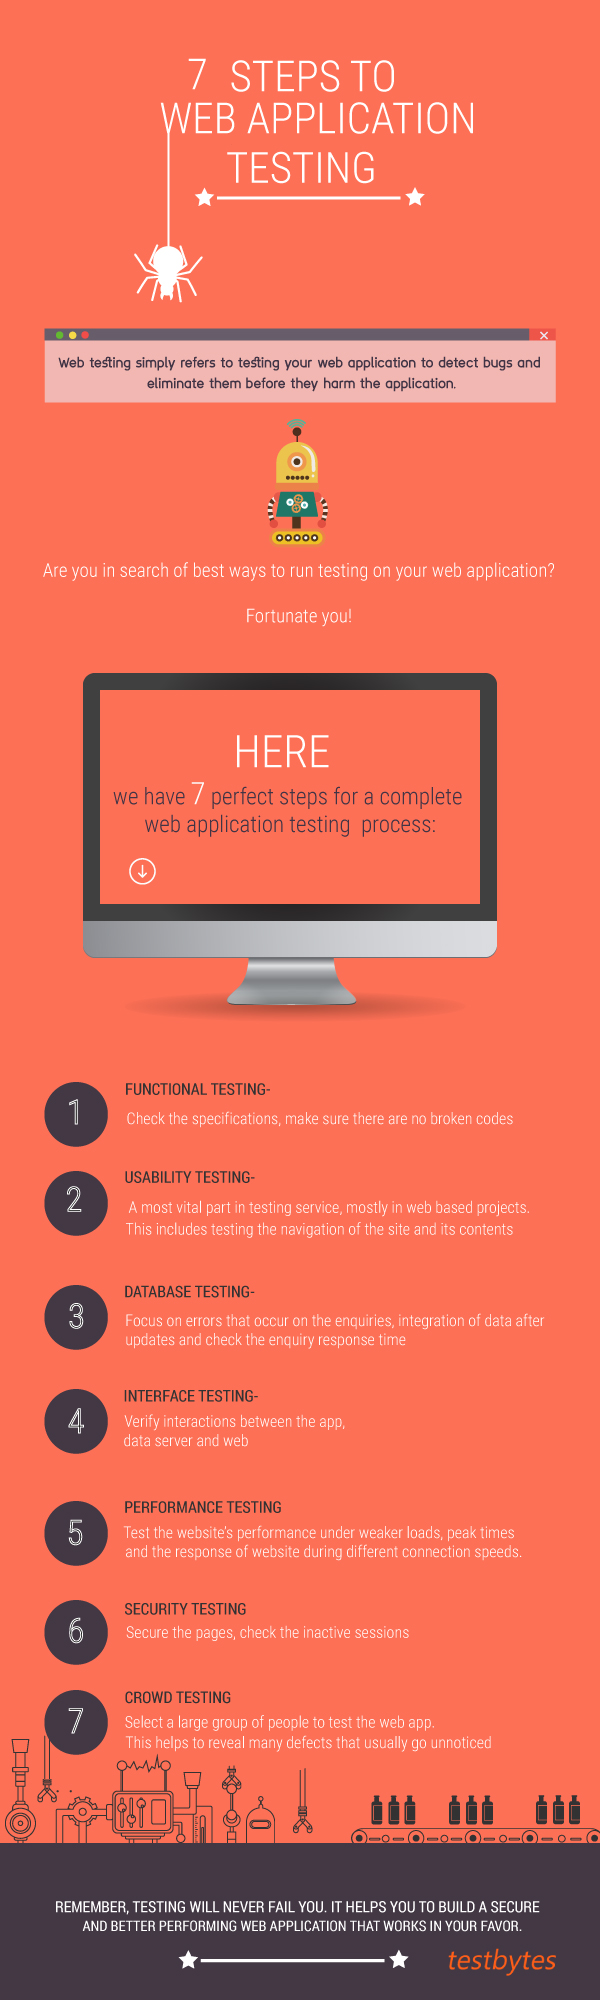 steps to testing web applications The primary objective for a web application penetration test is to identify exploitable vulnerabilities in applications before hackers are able to discover and exploit them web application penetration testing will reveal real-world steps of a web app pen test this is.